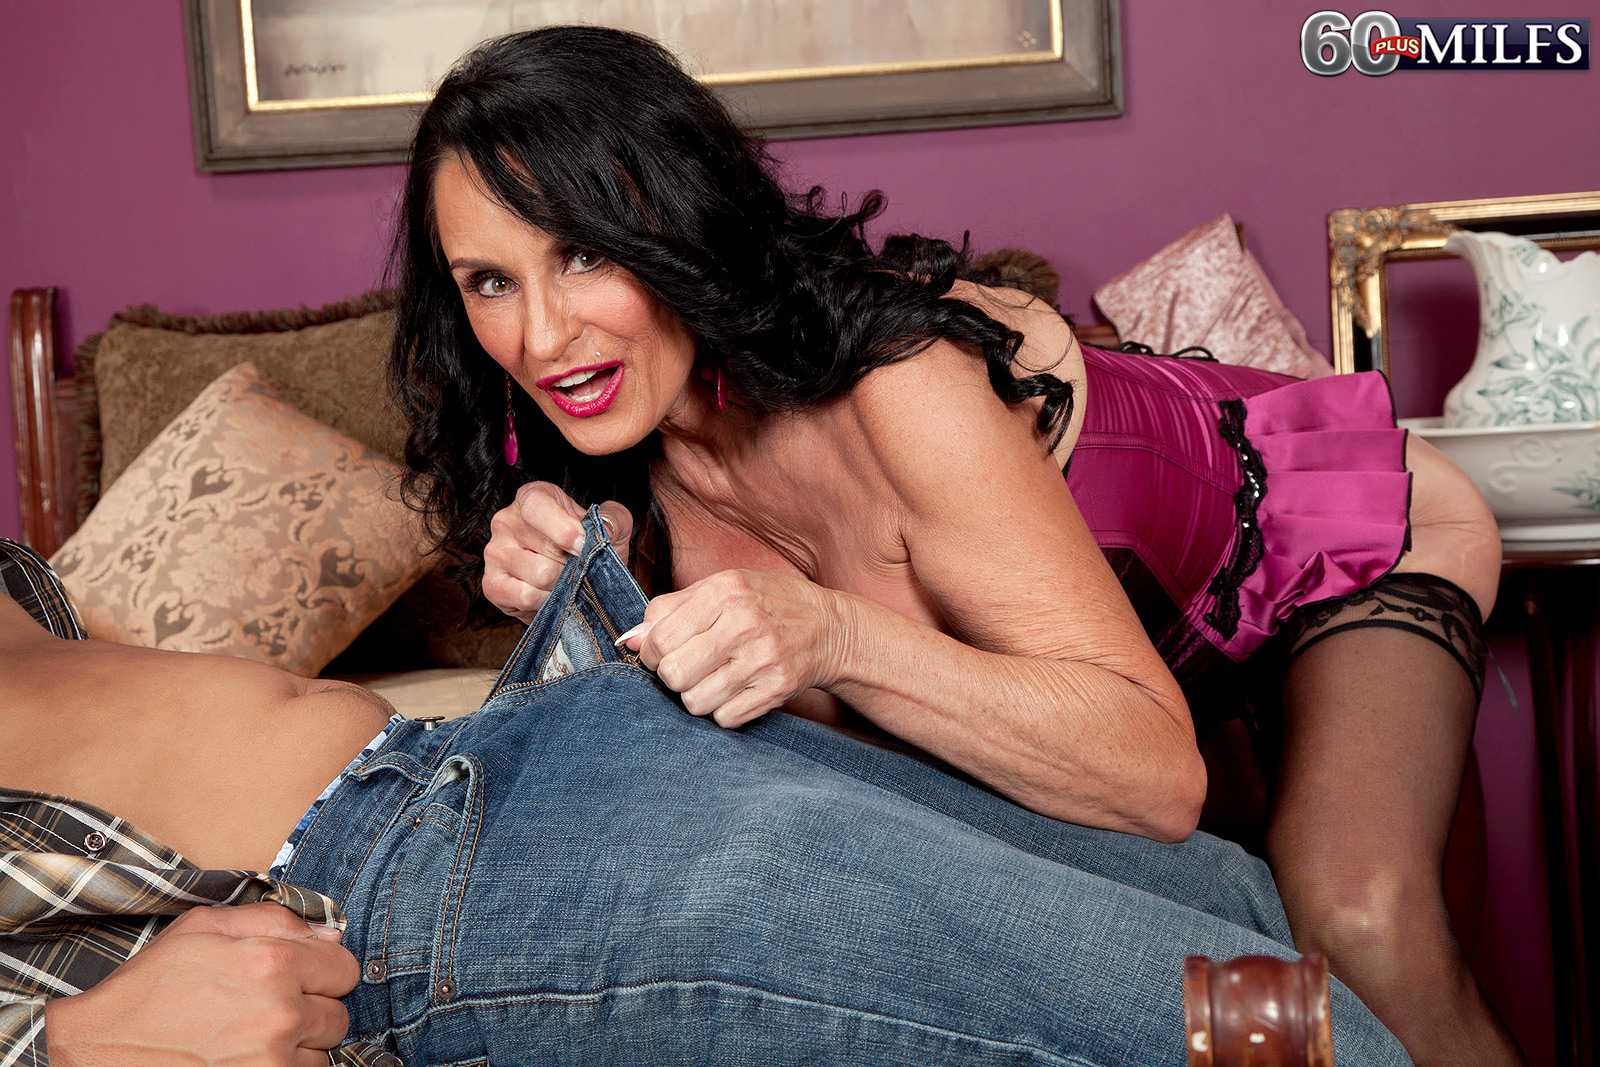 Wicked 60+ Babe Rita Daniels Loves The Meat stick